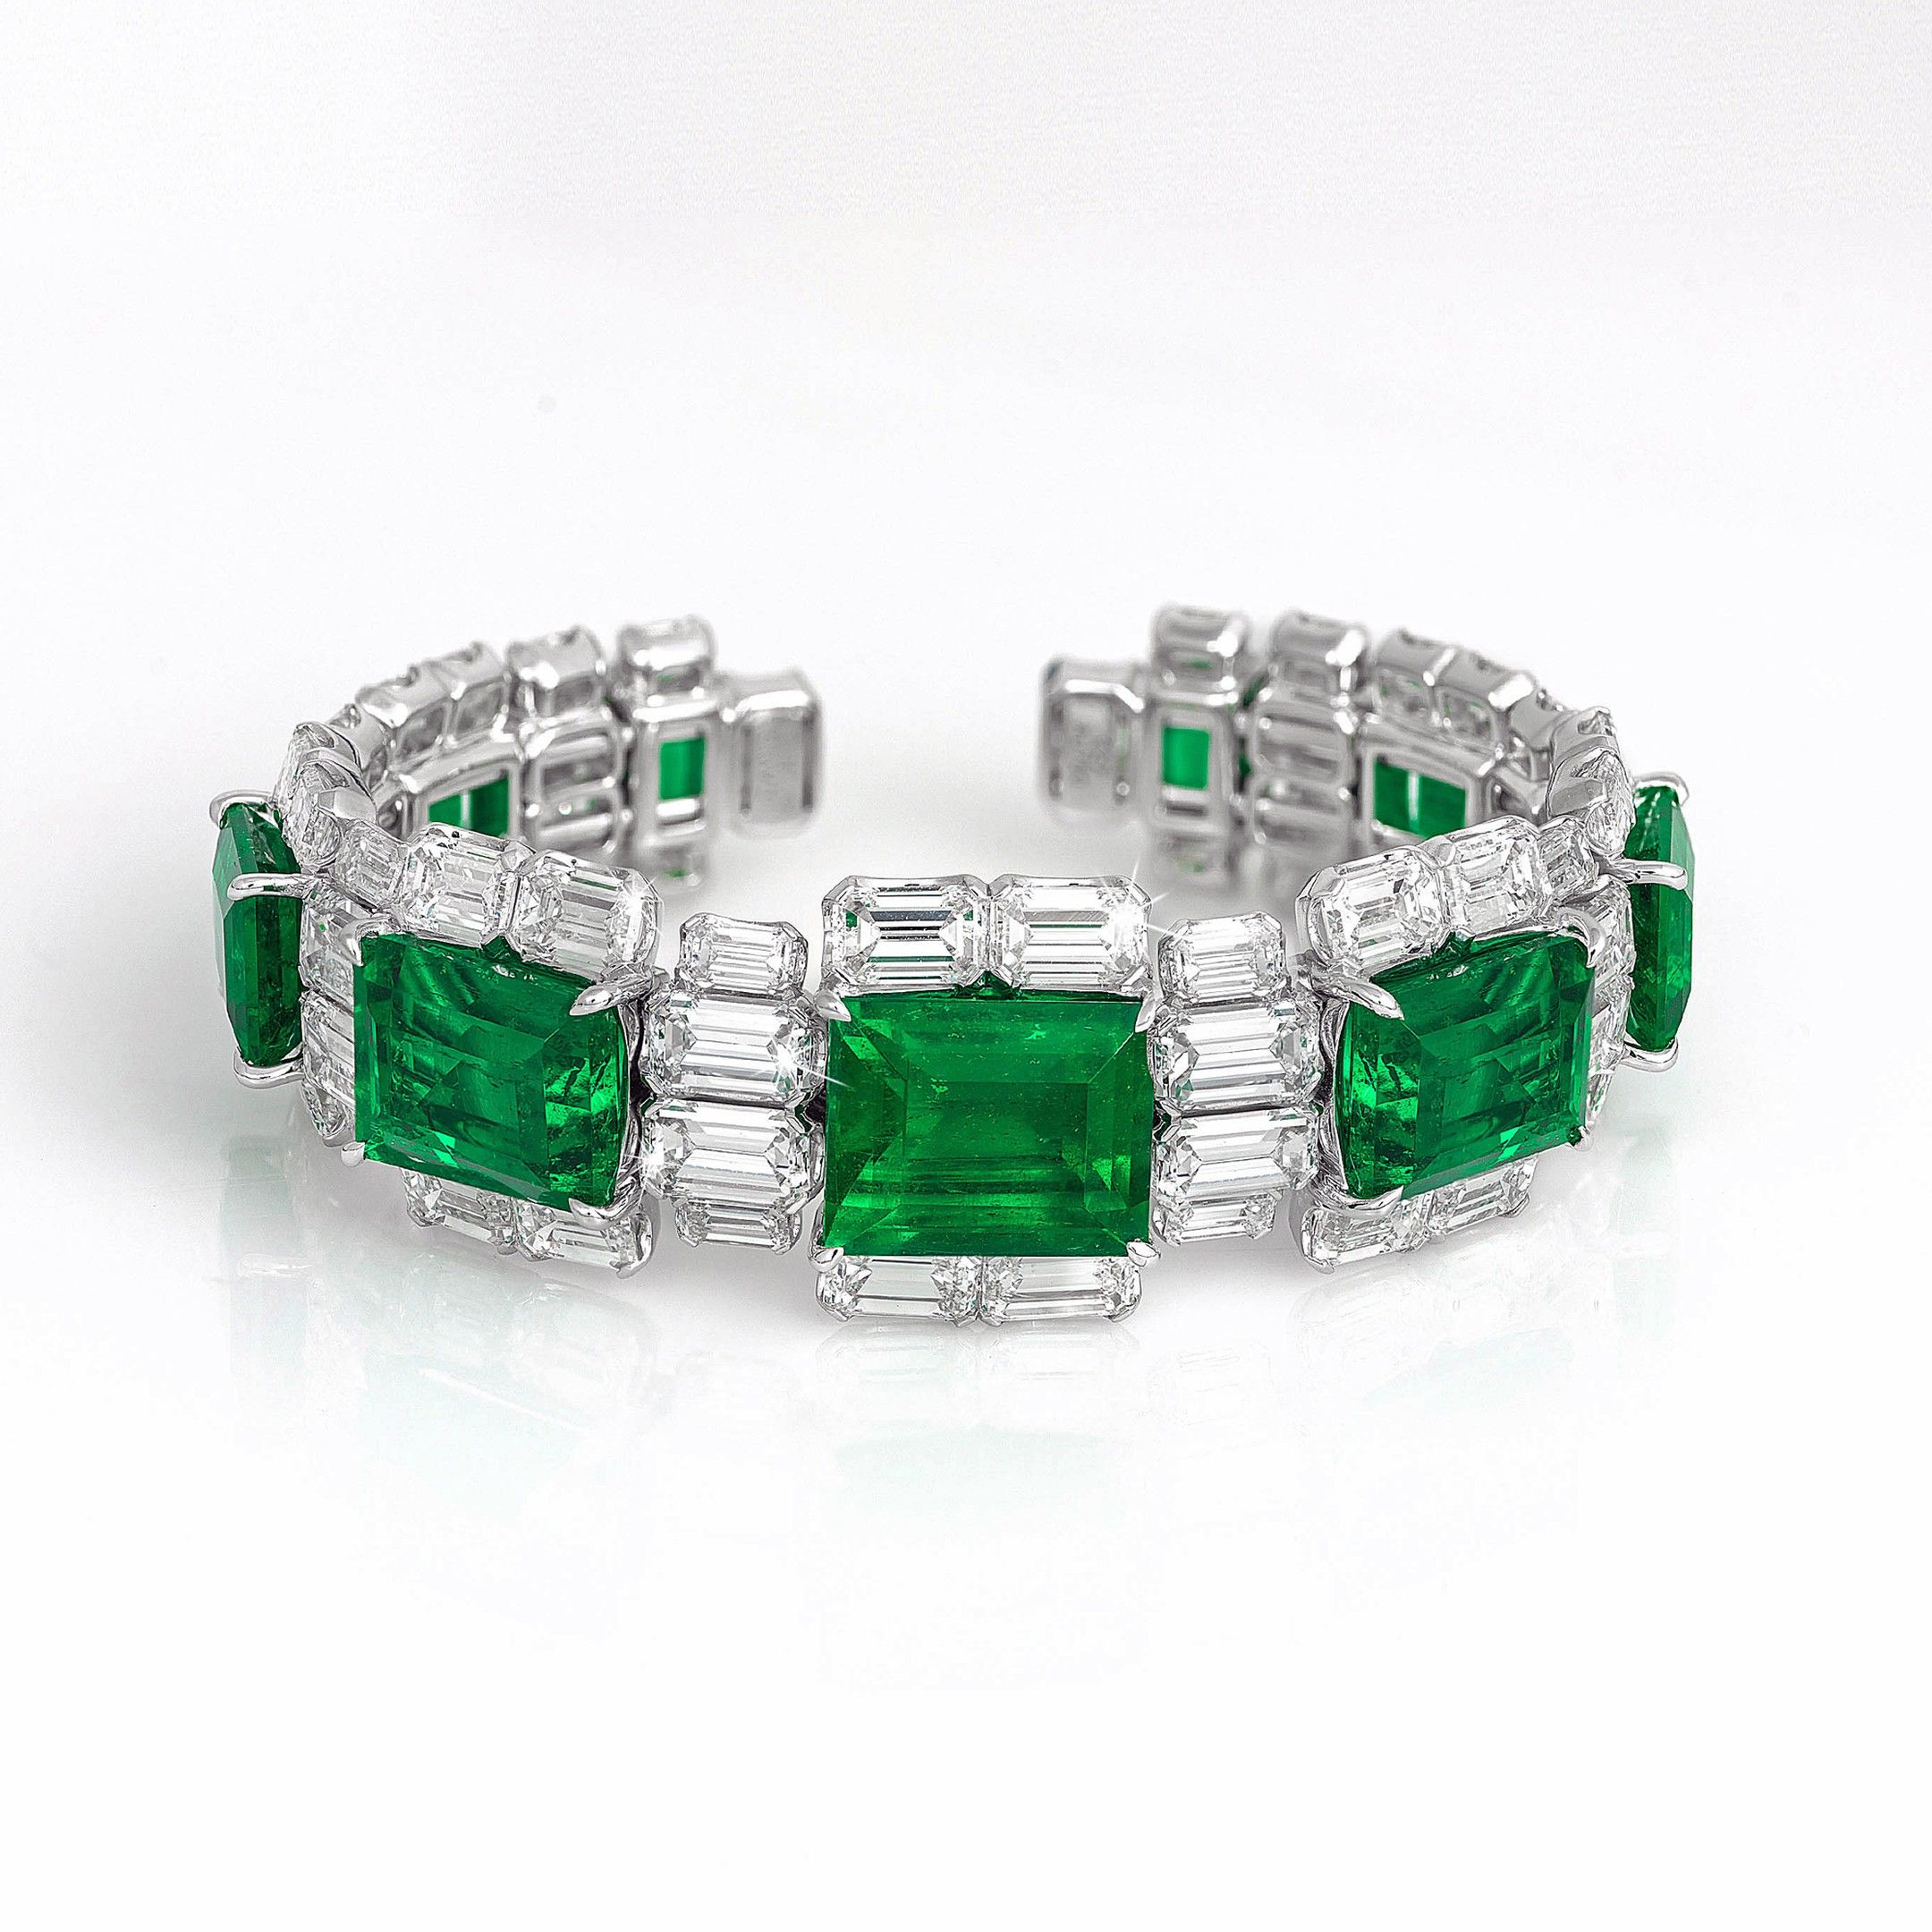 jewelers ring emerald diamond and barmakian cut products